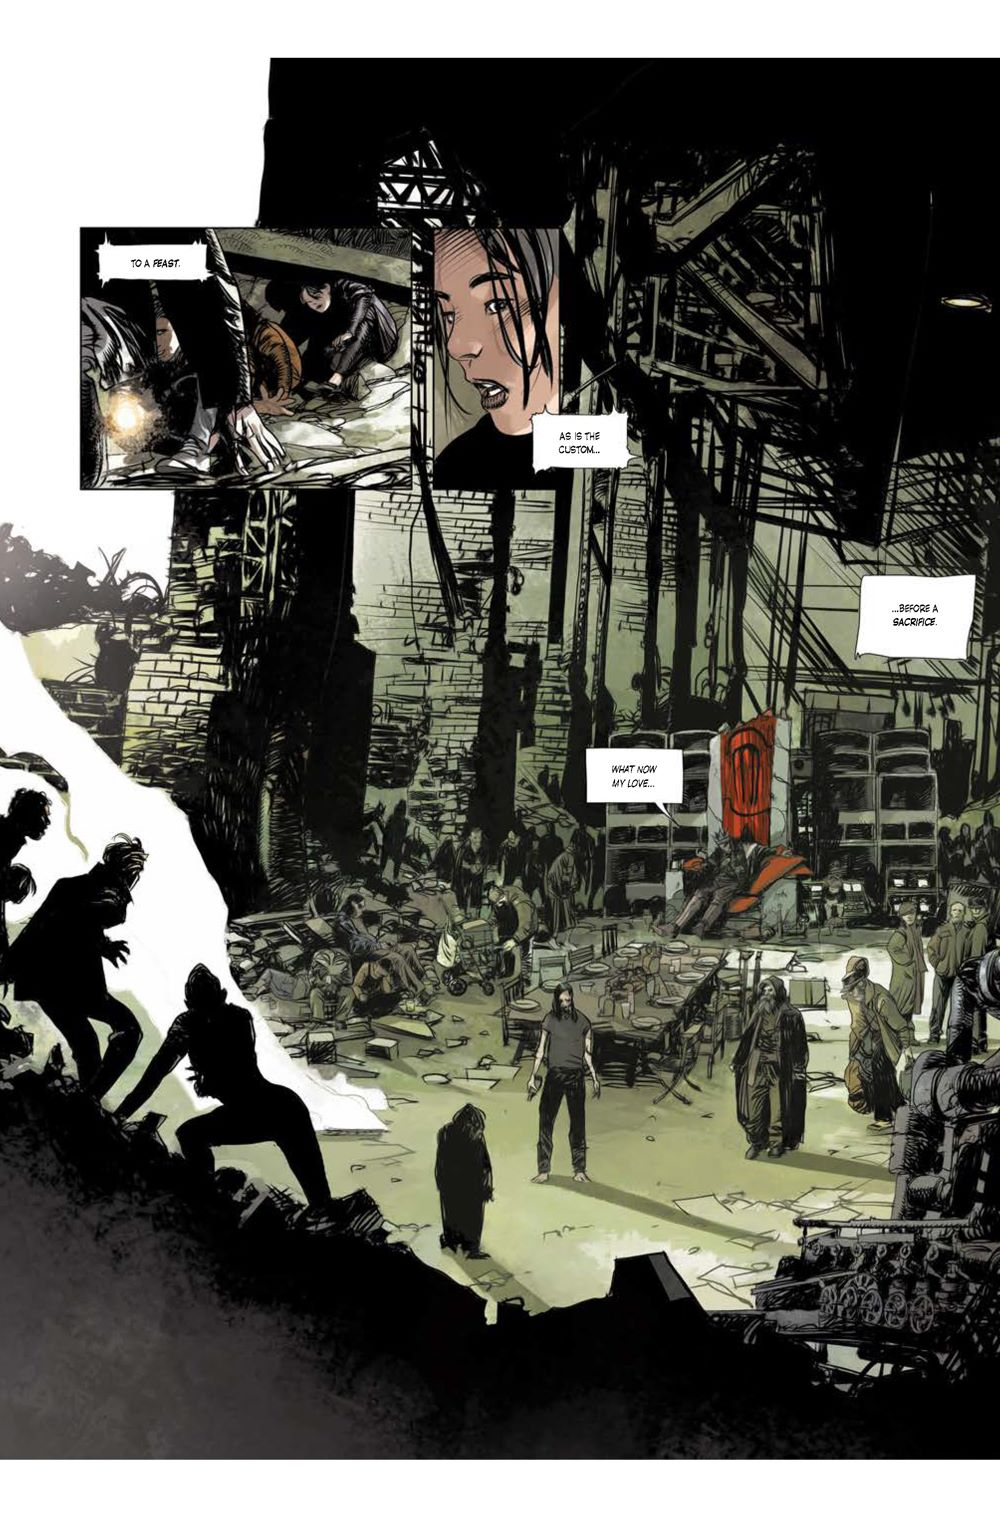 Cutting-Edge-The-Devils-Mirror-2-Binder1_Page_4 ComicList Previews: CUTTING EDGE THE DEVIL'S MIRROR #2 (OF 2)